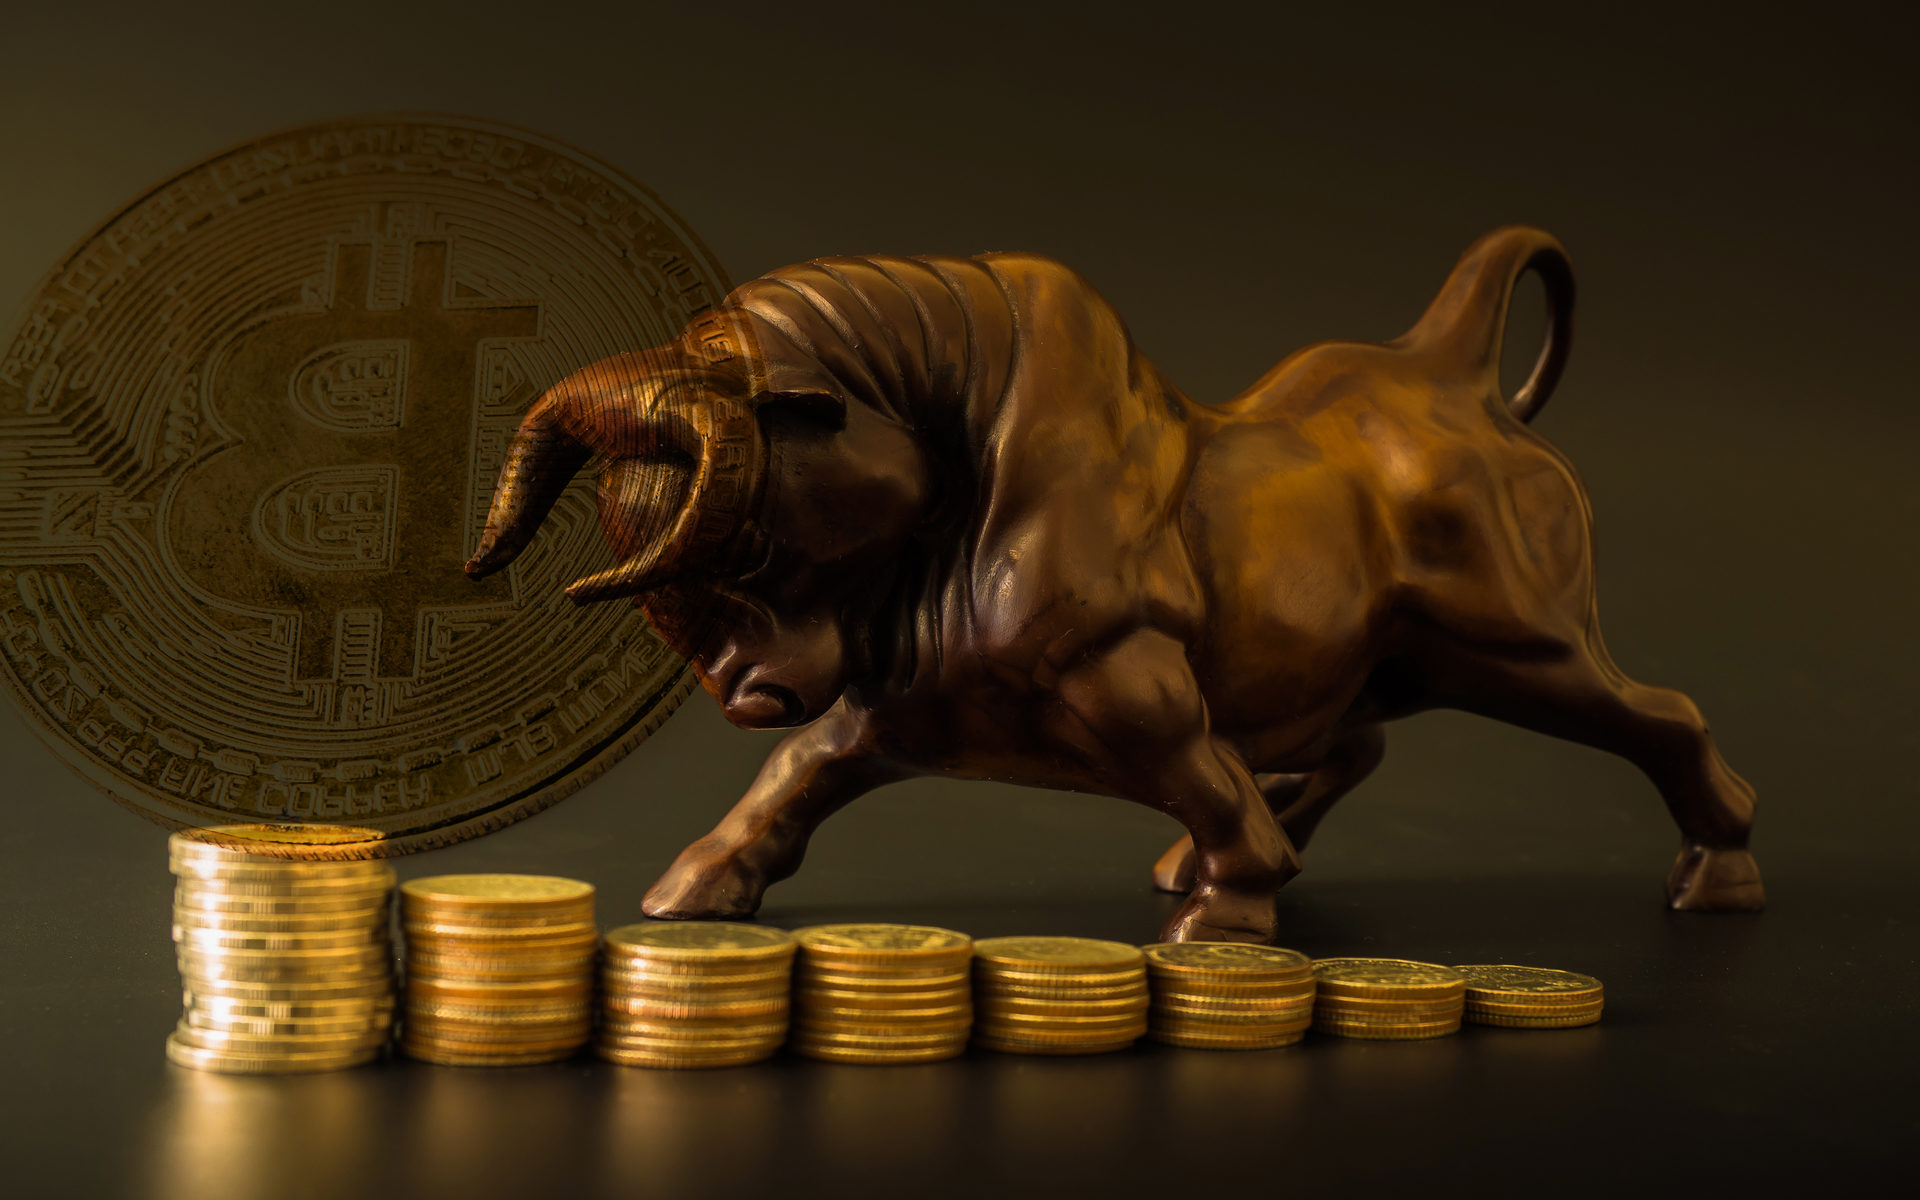 Bitcoin Price Set For $100,000, Altcoins Unlikely to Rally: Binance <bold>CSO</bold>